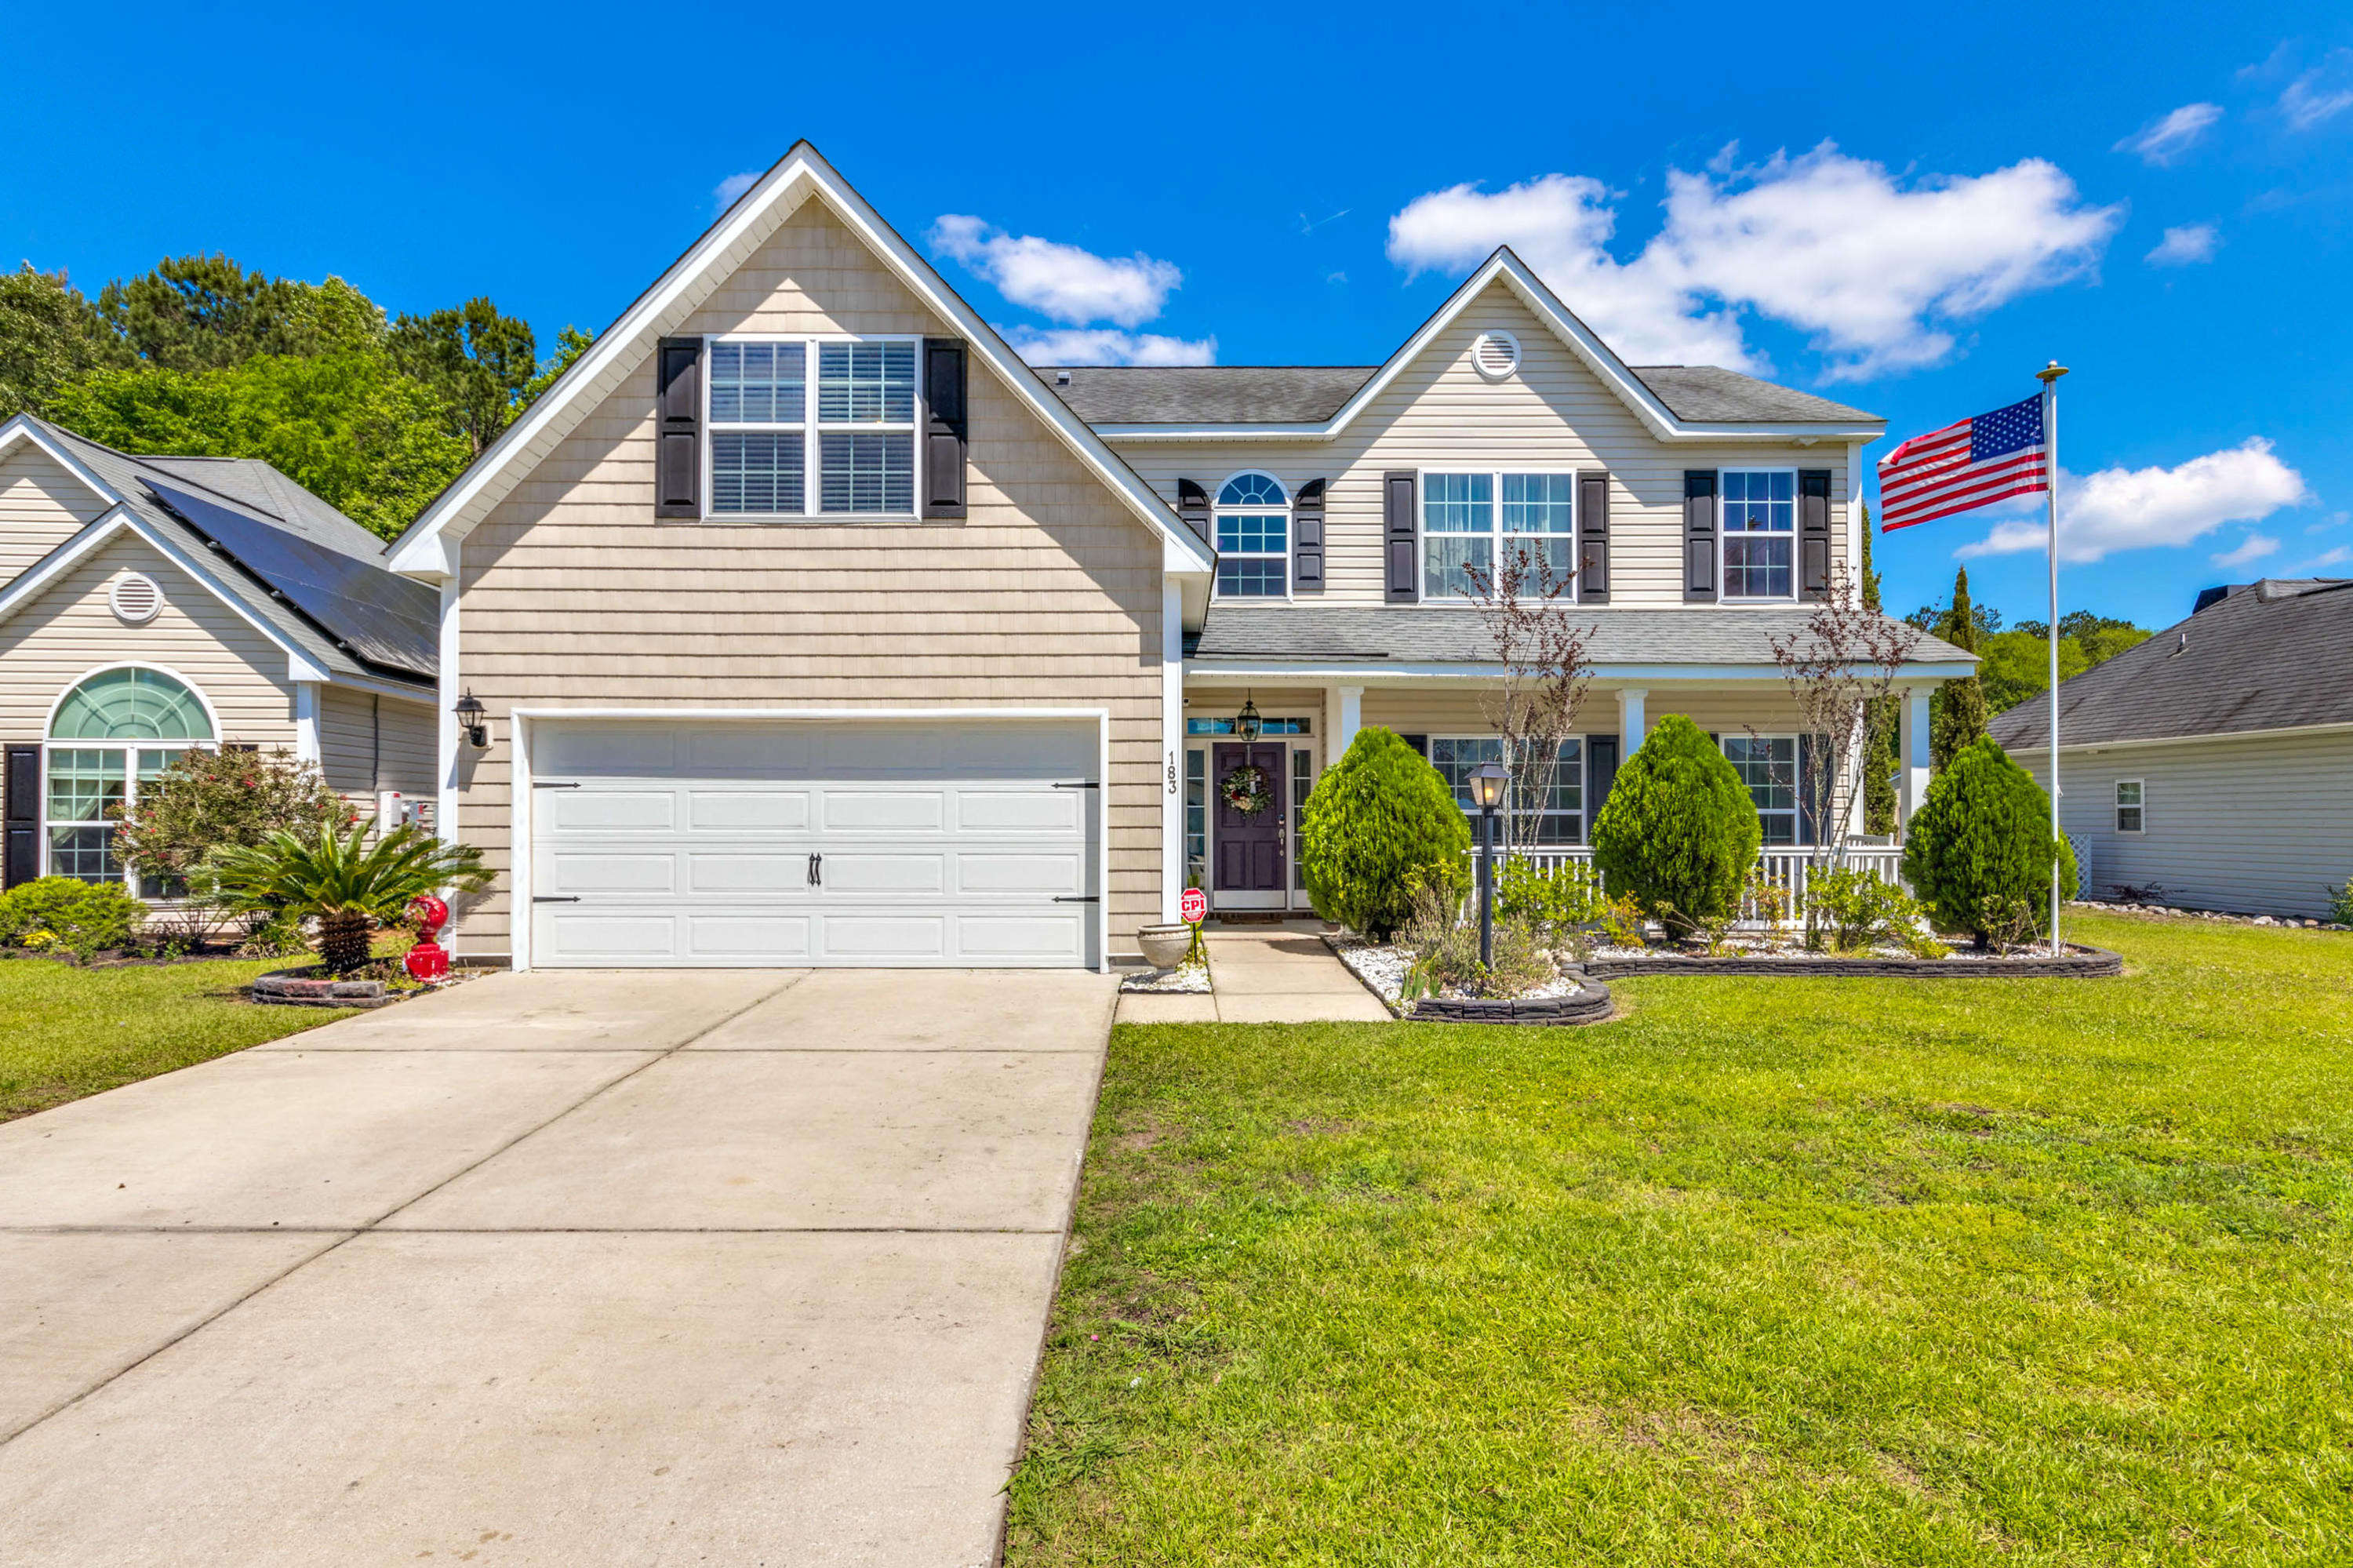 183 Cableswynd Way Summerville, Sc 29485